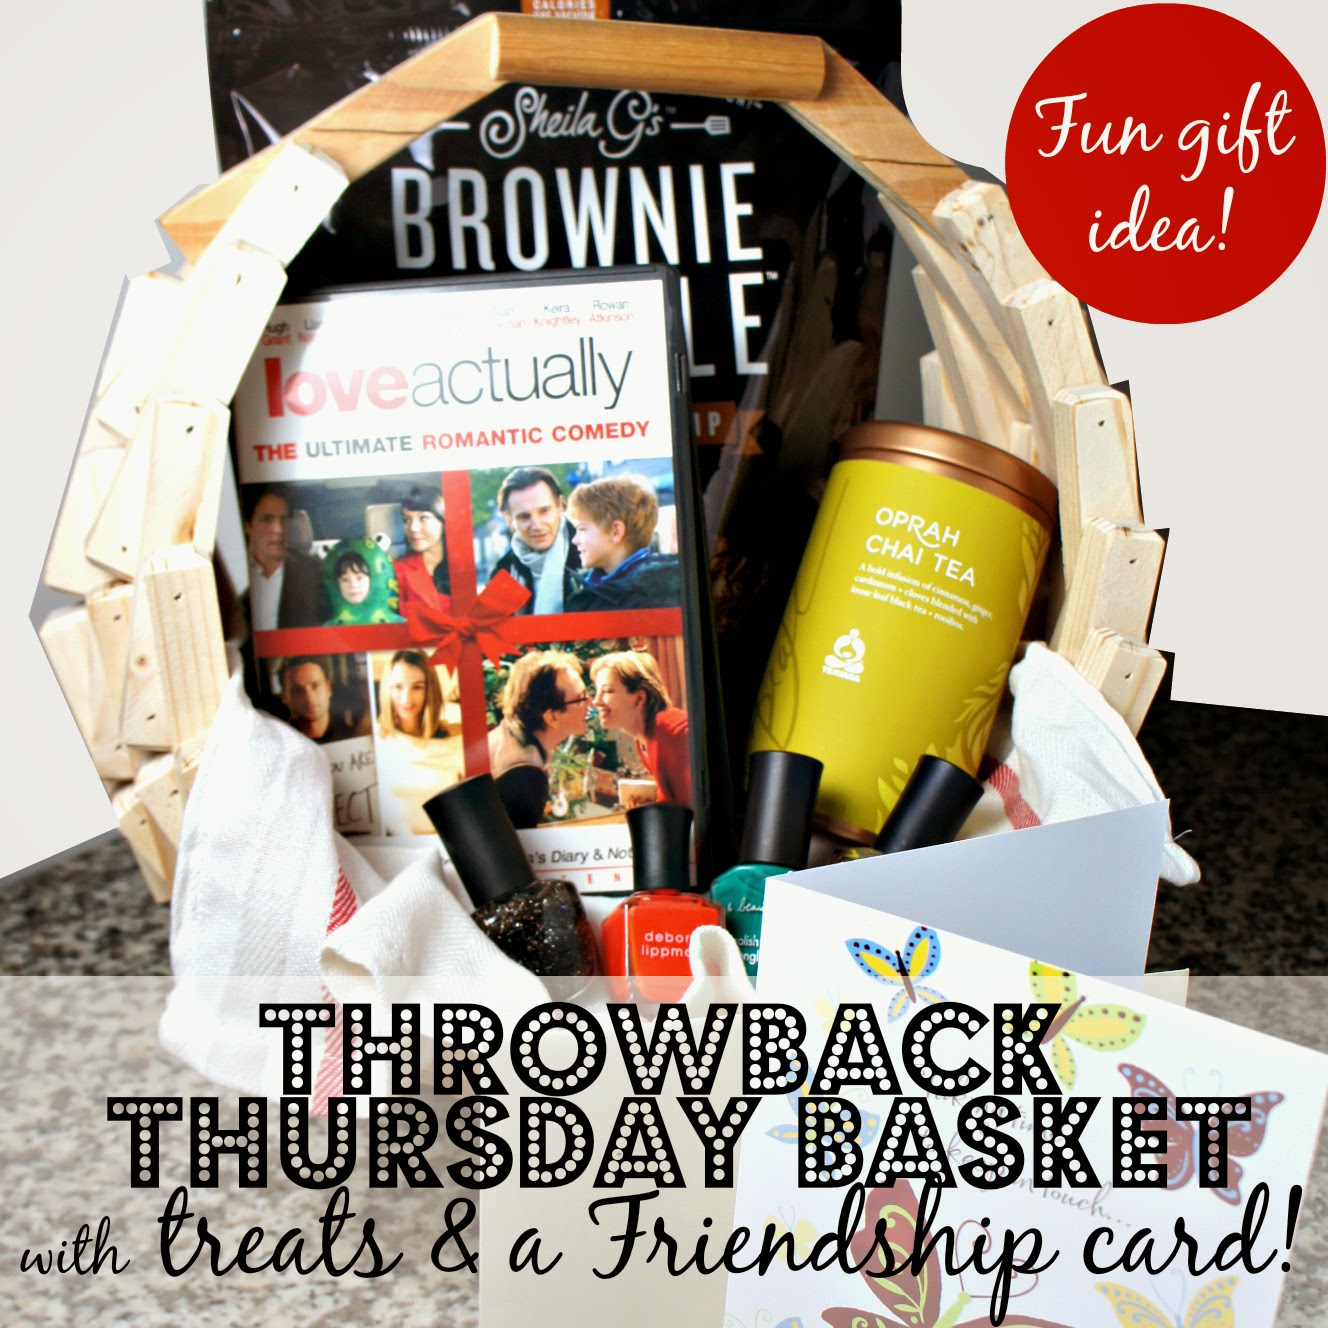 Throwback Thursday Basket with treats and a Friendship Card! #ConnectingFriends #TBT